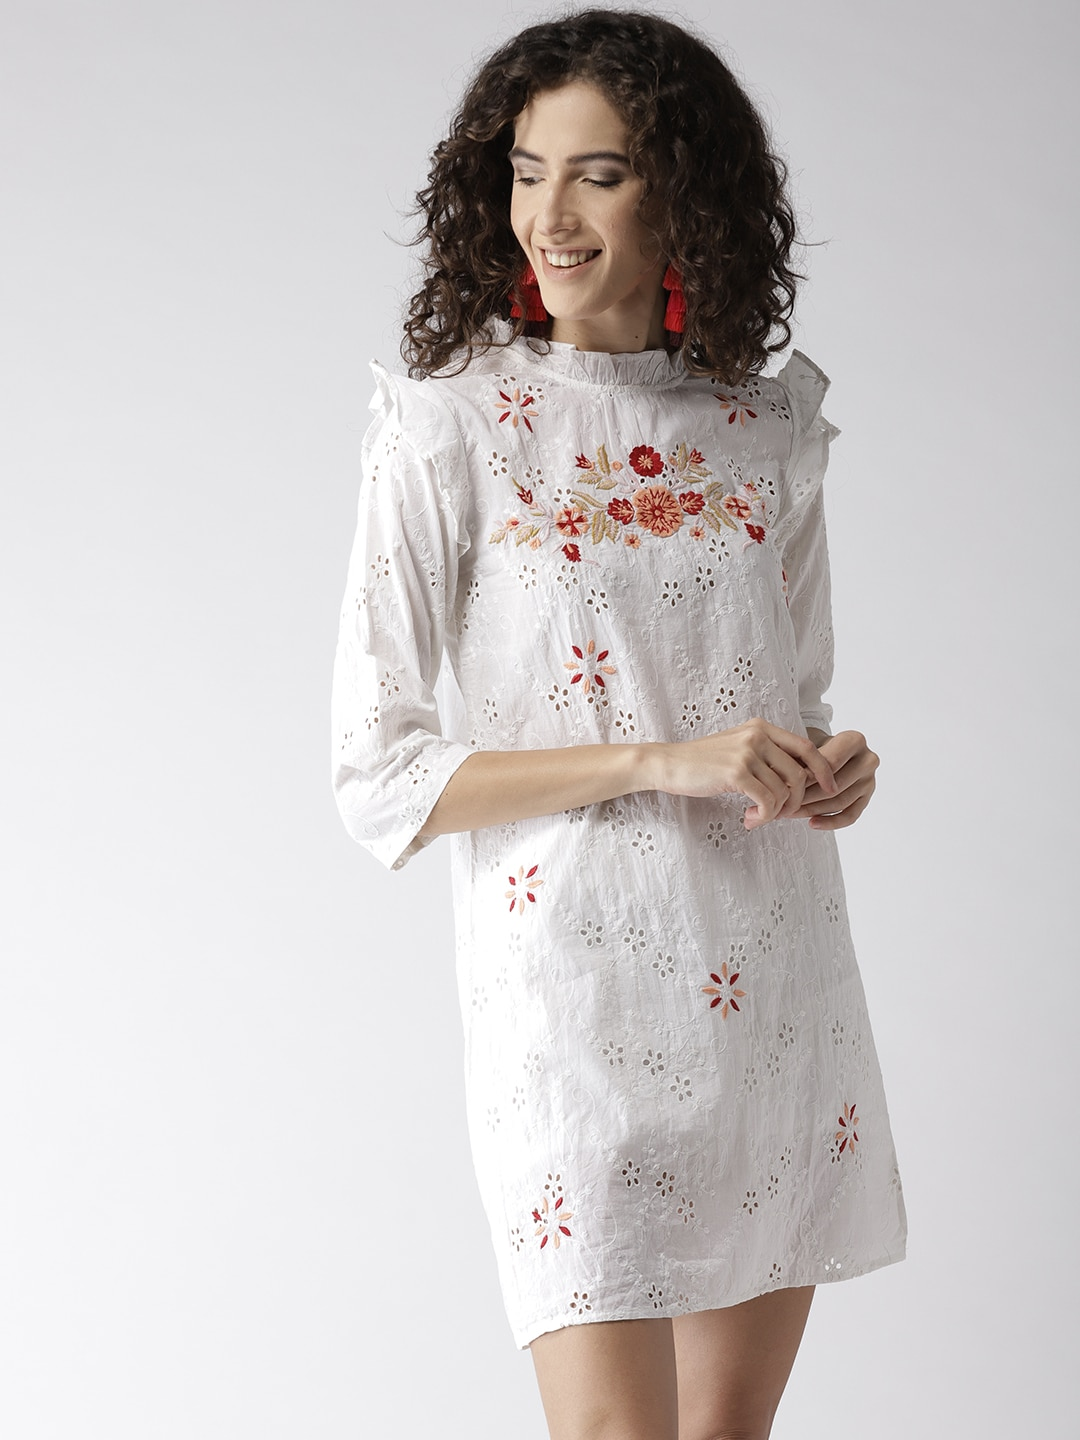 216466bc94 Lace Dress - Buy Lace Dresses for Women   girls Online